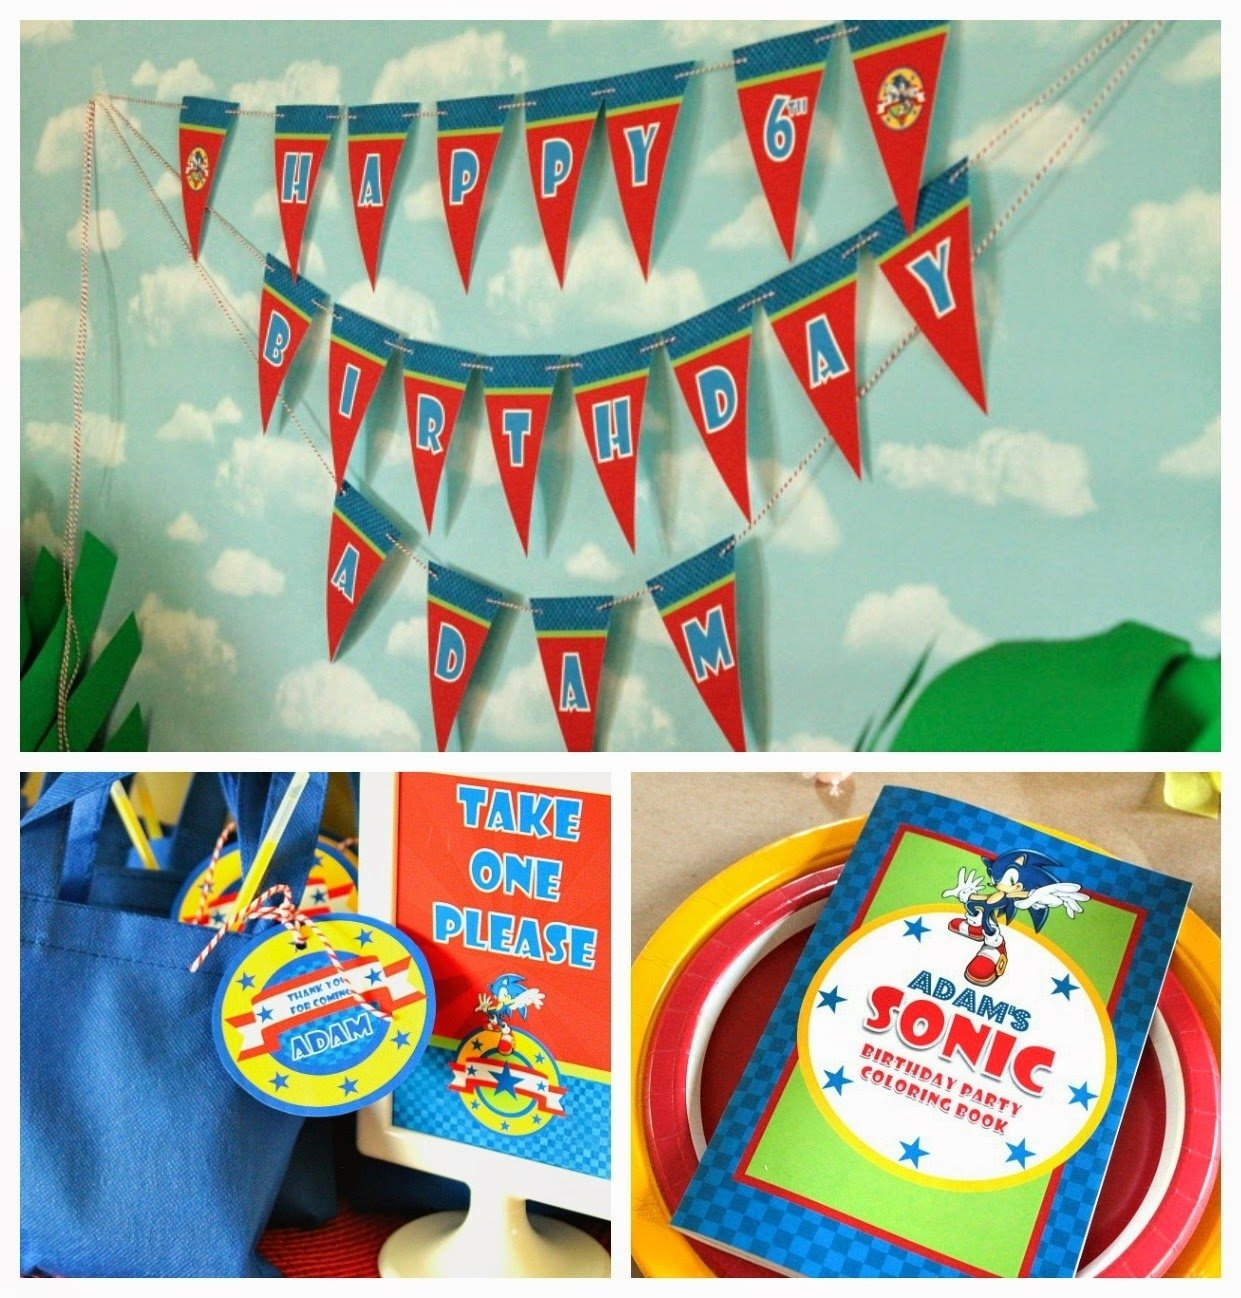 10 Great Sonic The Hedgehog Birthday Party Ideas cupcake wishes birthday dreams real parties adams sonic the 1 2021